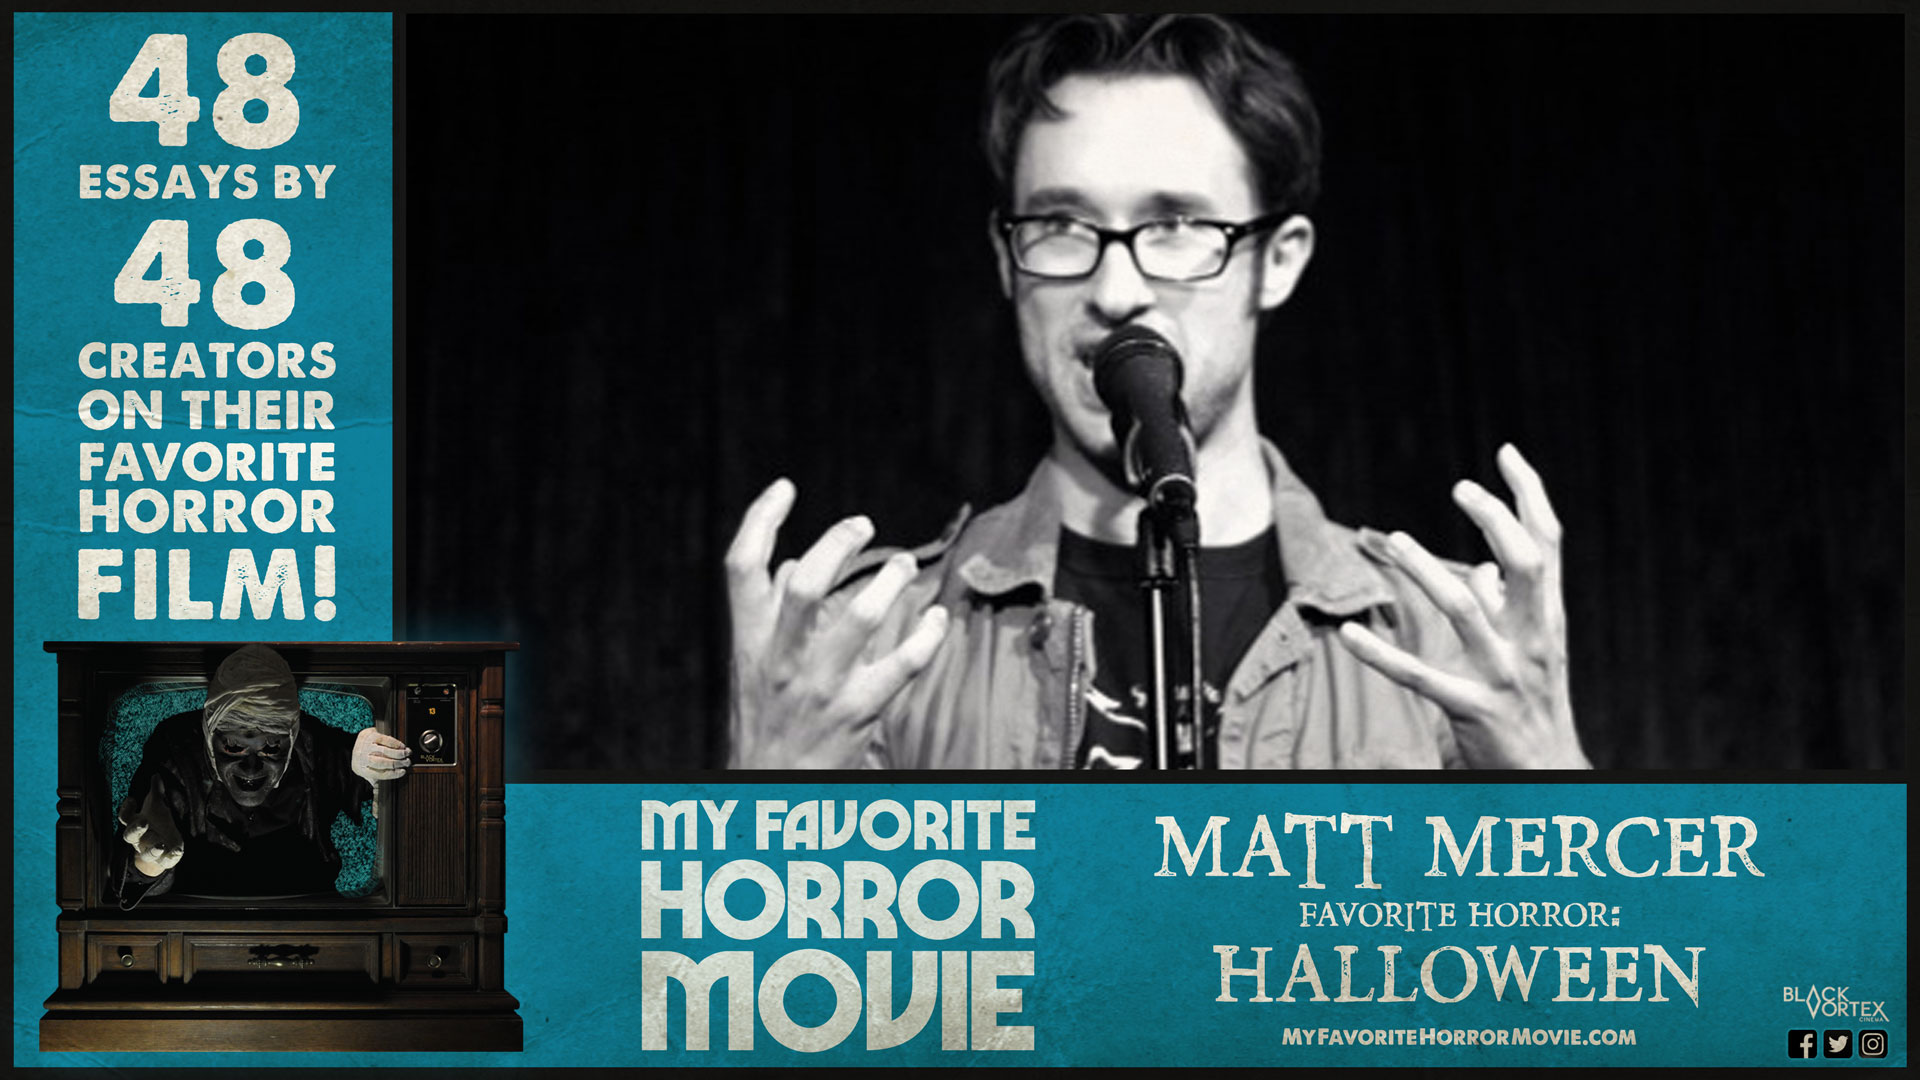 My Favorite Horror Movie Matt Mercer On John Carpenters Halloween  Culled From The  Bestselling Book My Favorite Horror Movie Which  Features  Essays By Horror Creators On The Films Which Shaped Them They  Serve To